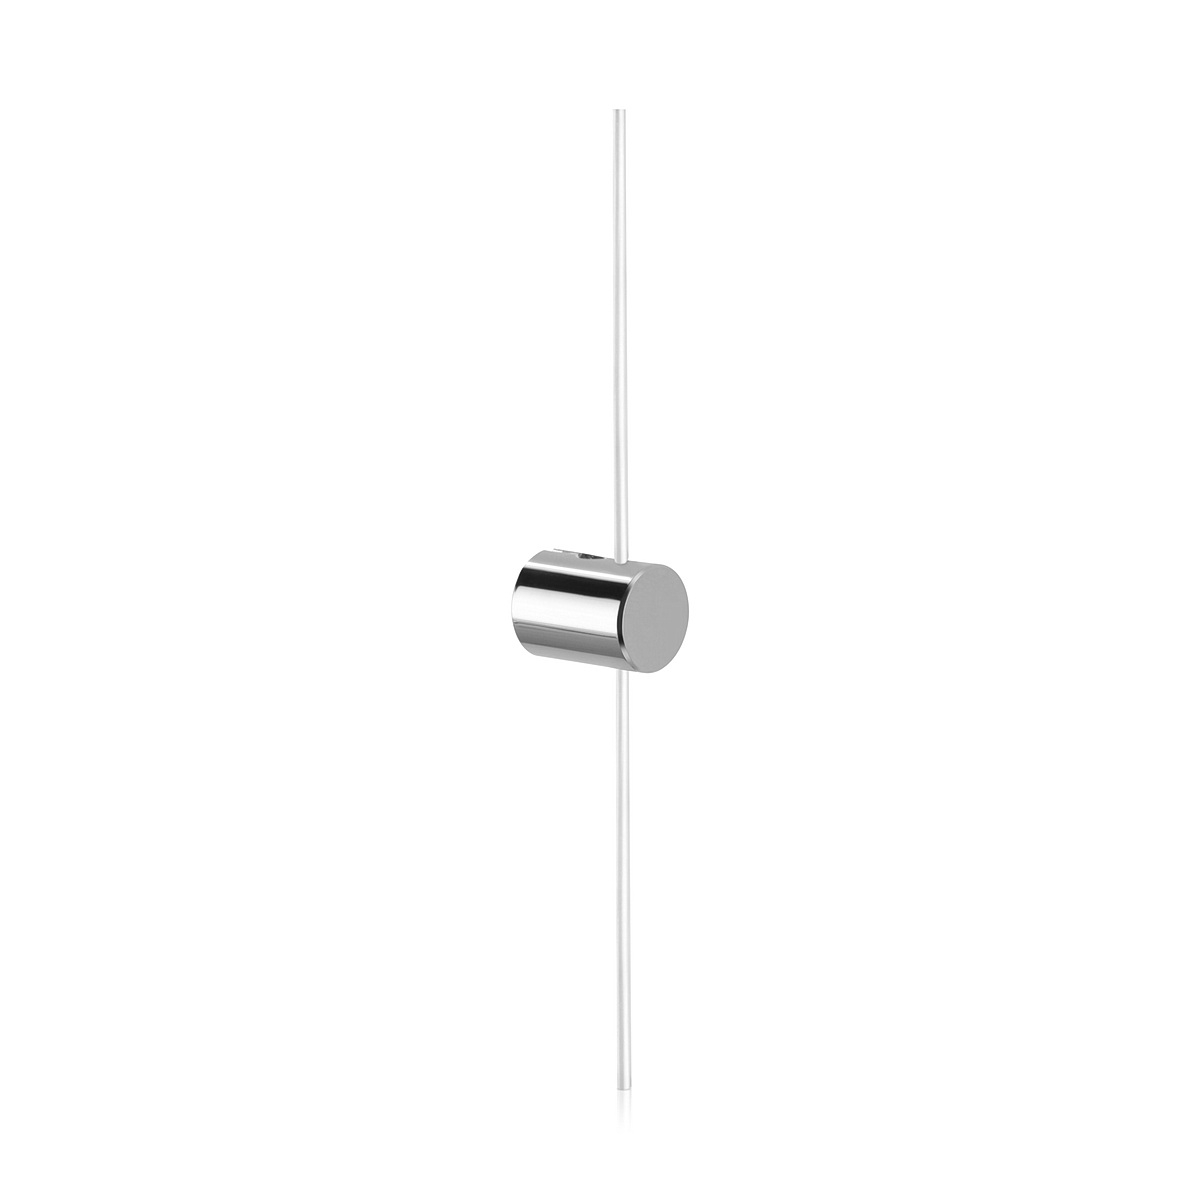 Right Wine Cellar Aluminum Cable Support one end Chrome Polished